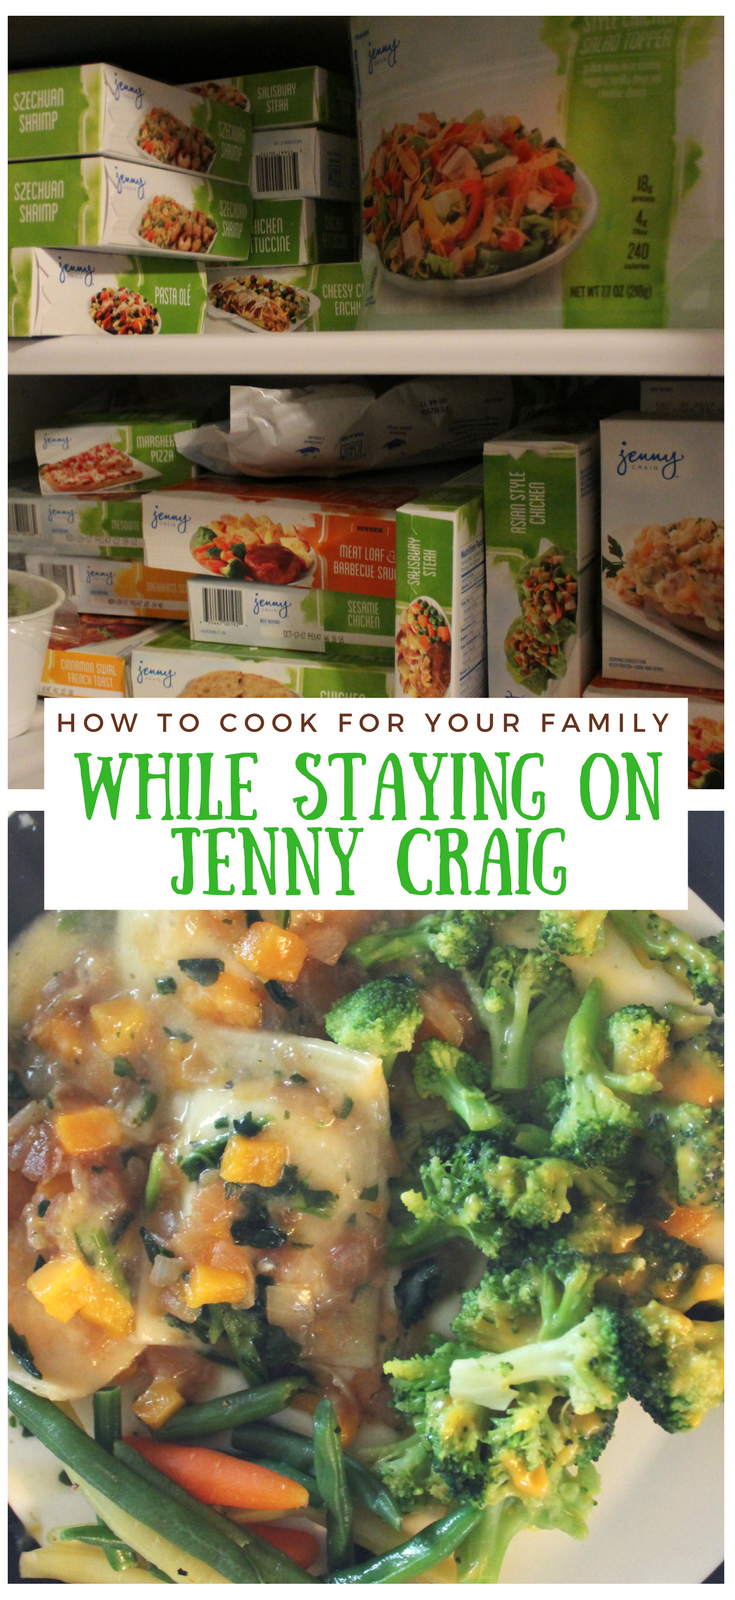 Cooking meals for your family that you don't eat sounds hard, right? Here's how I cook for my family and still stay on plan with Jenny Craig!